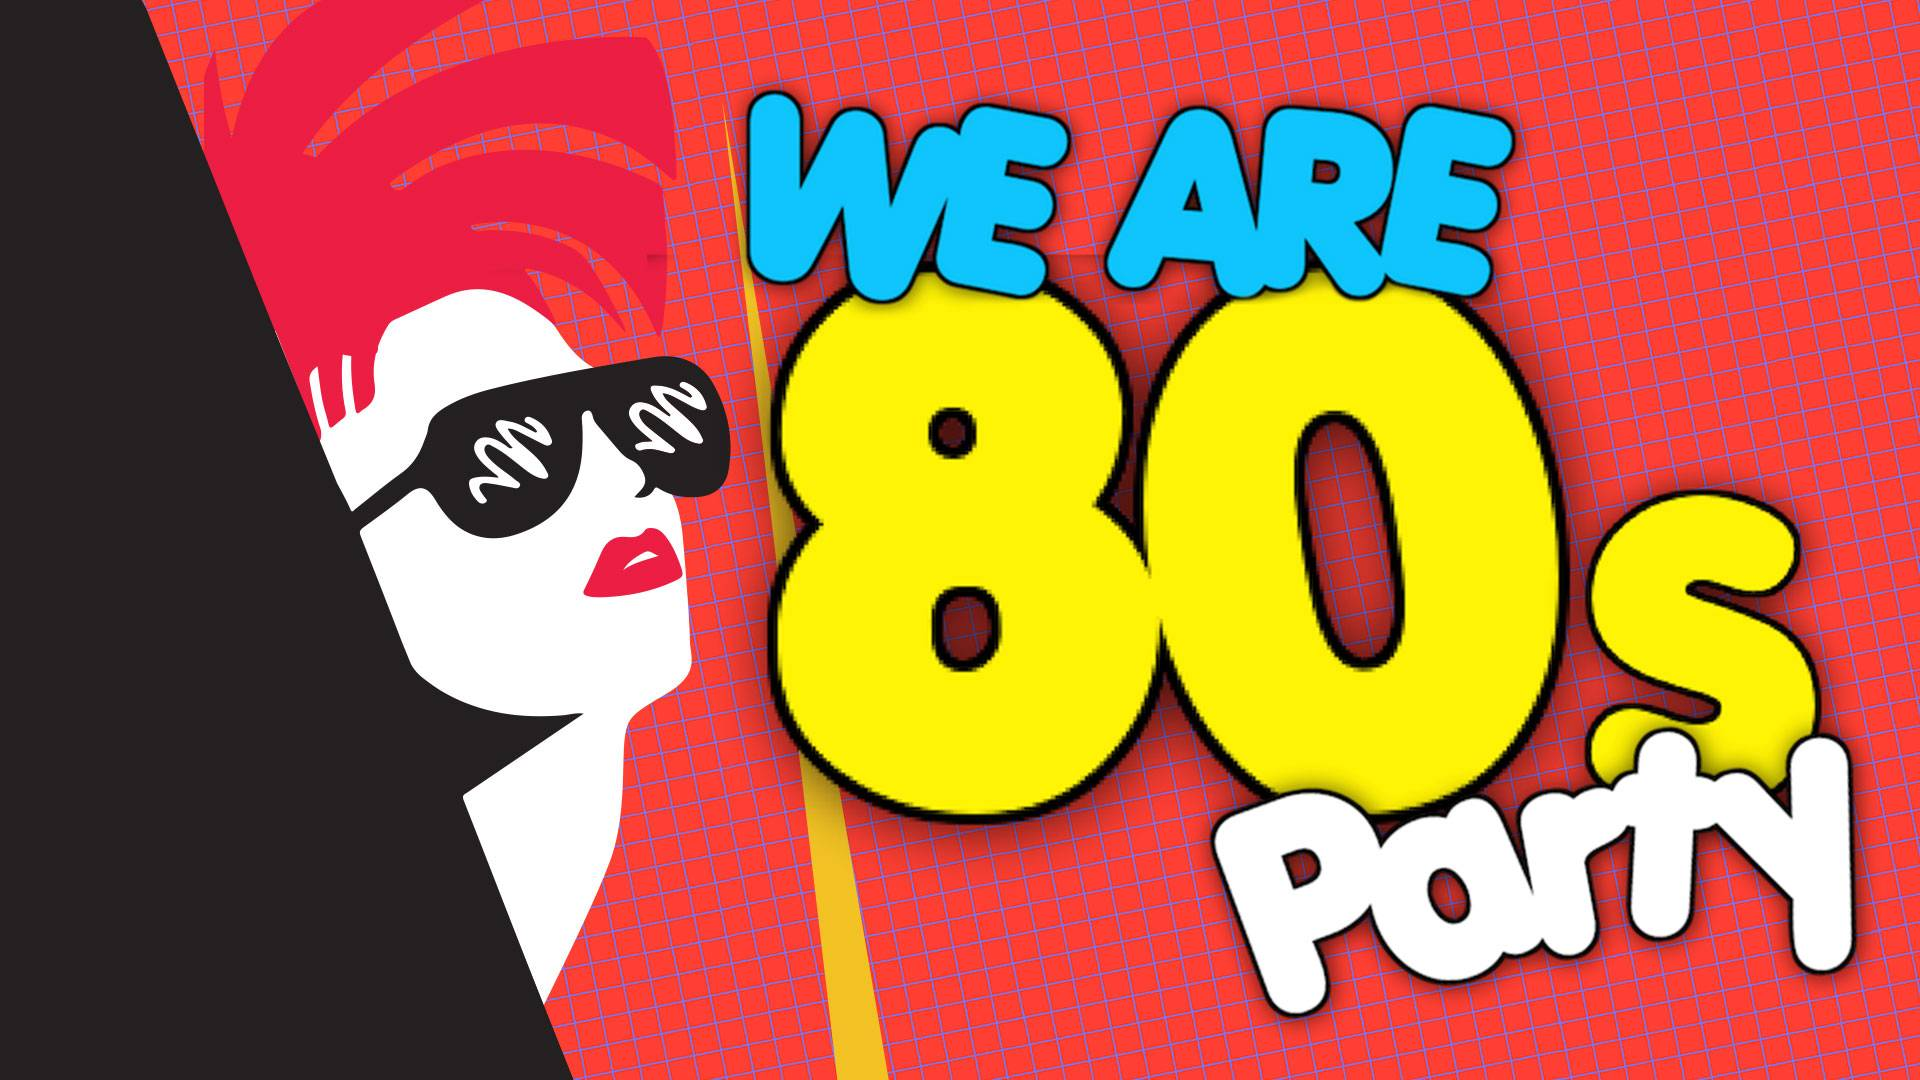 We are the 80s